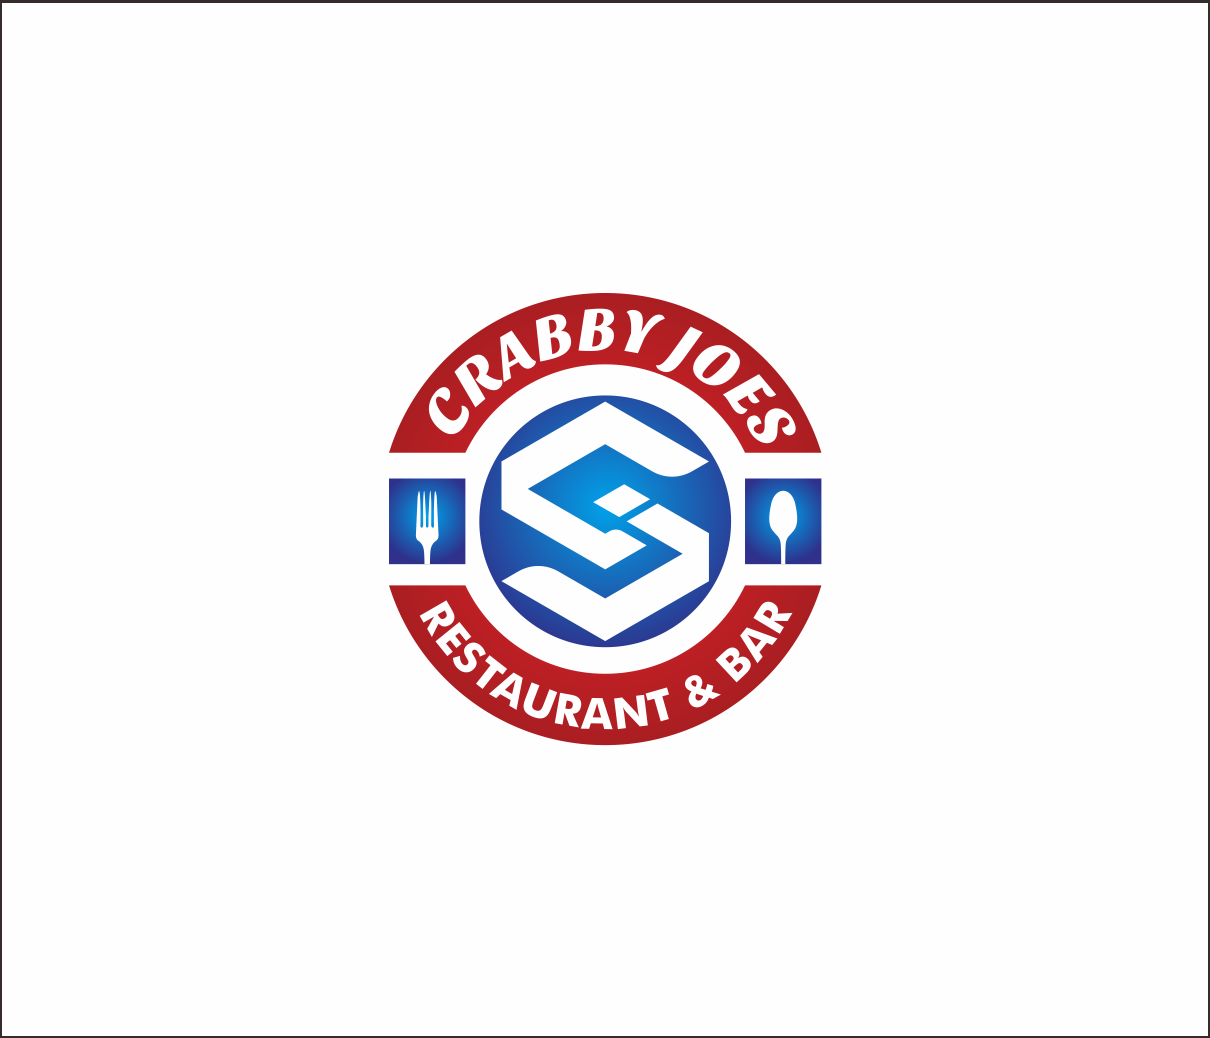 Logo Design by Armada Jamaluddin - Entry No. 80 in the Logo Design Contest Inspiring Logo Design for Cj's.